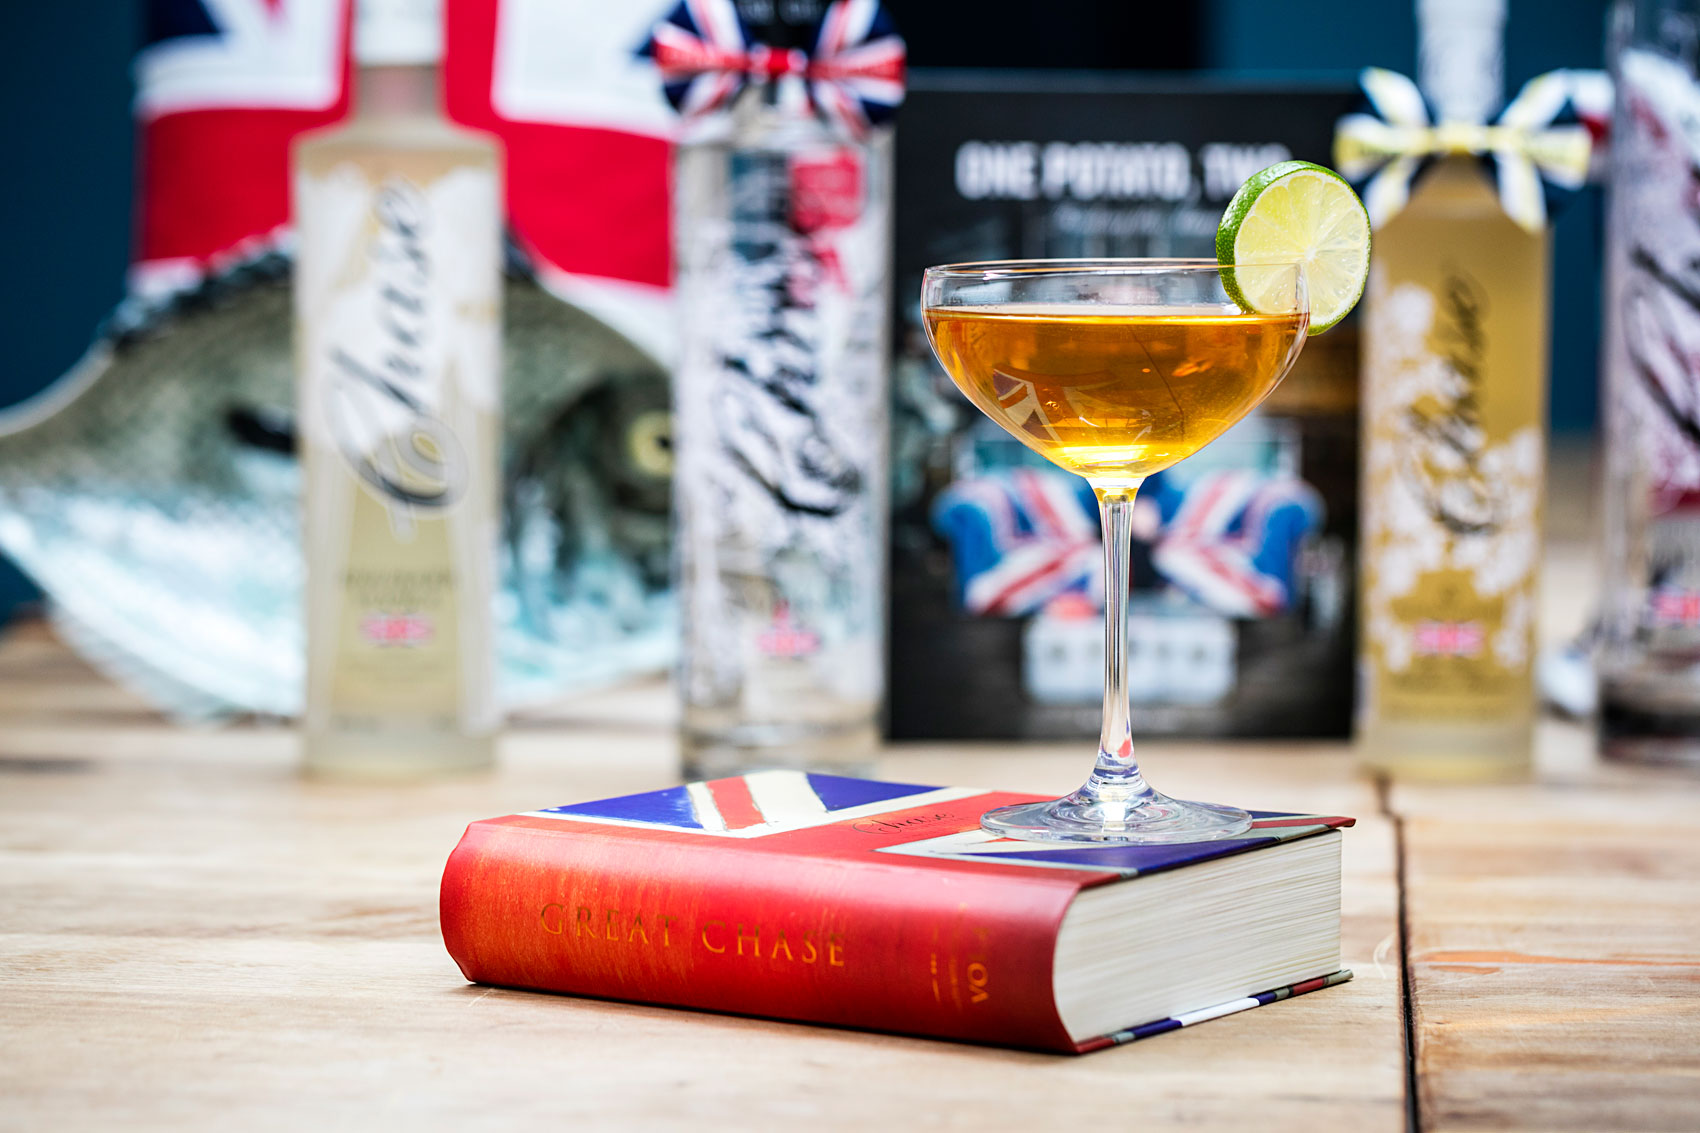 Kensington Place Launches Pop-up Bar With Chase Distillery